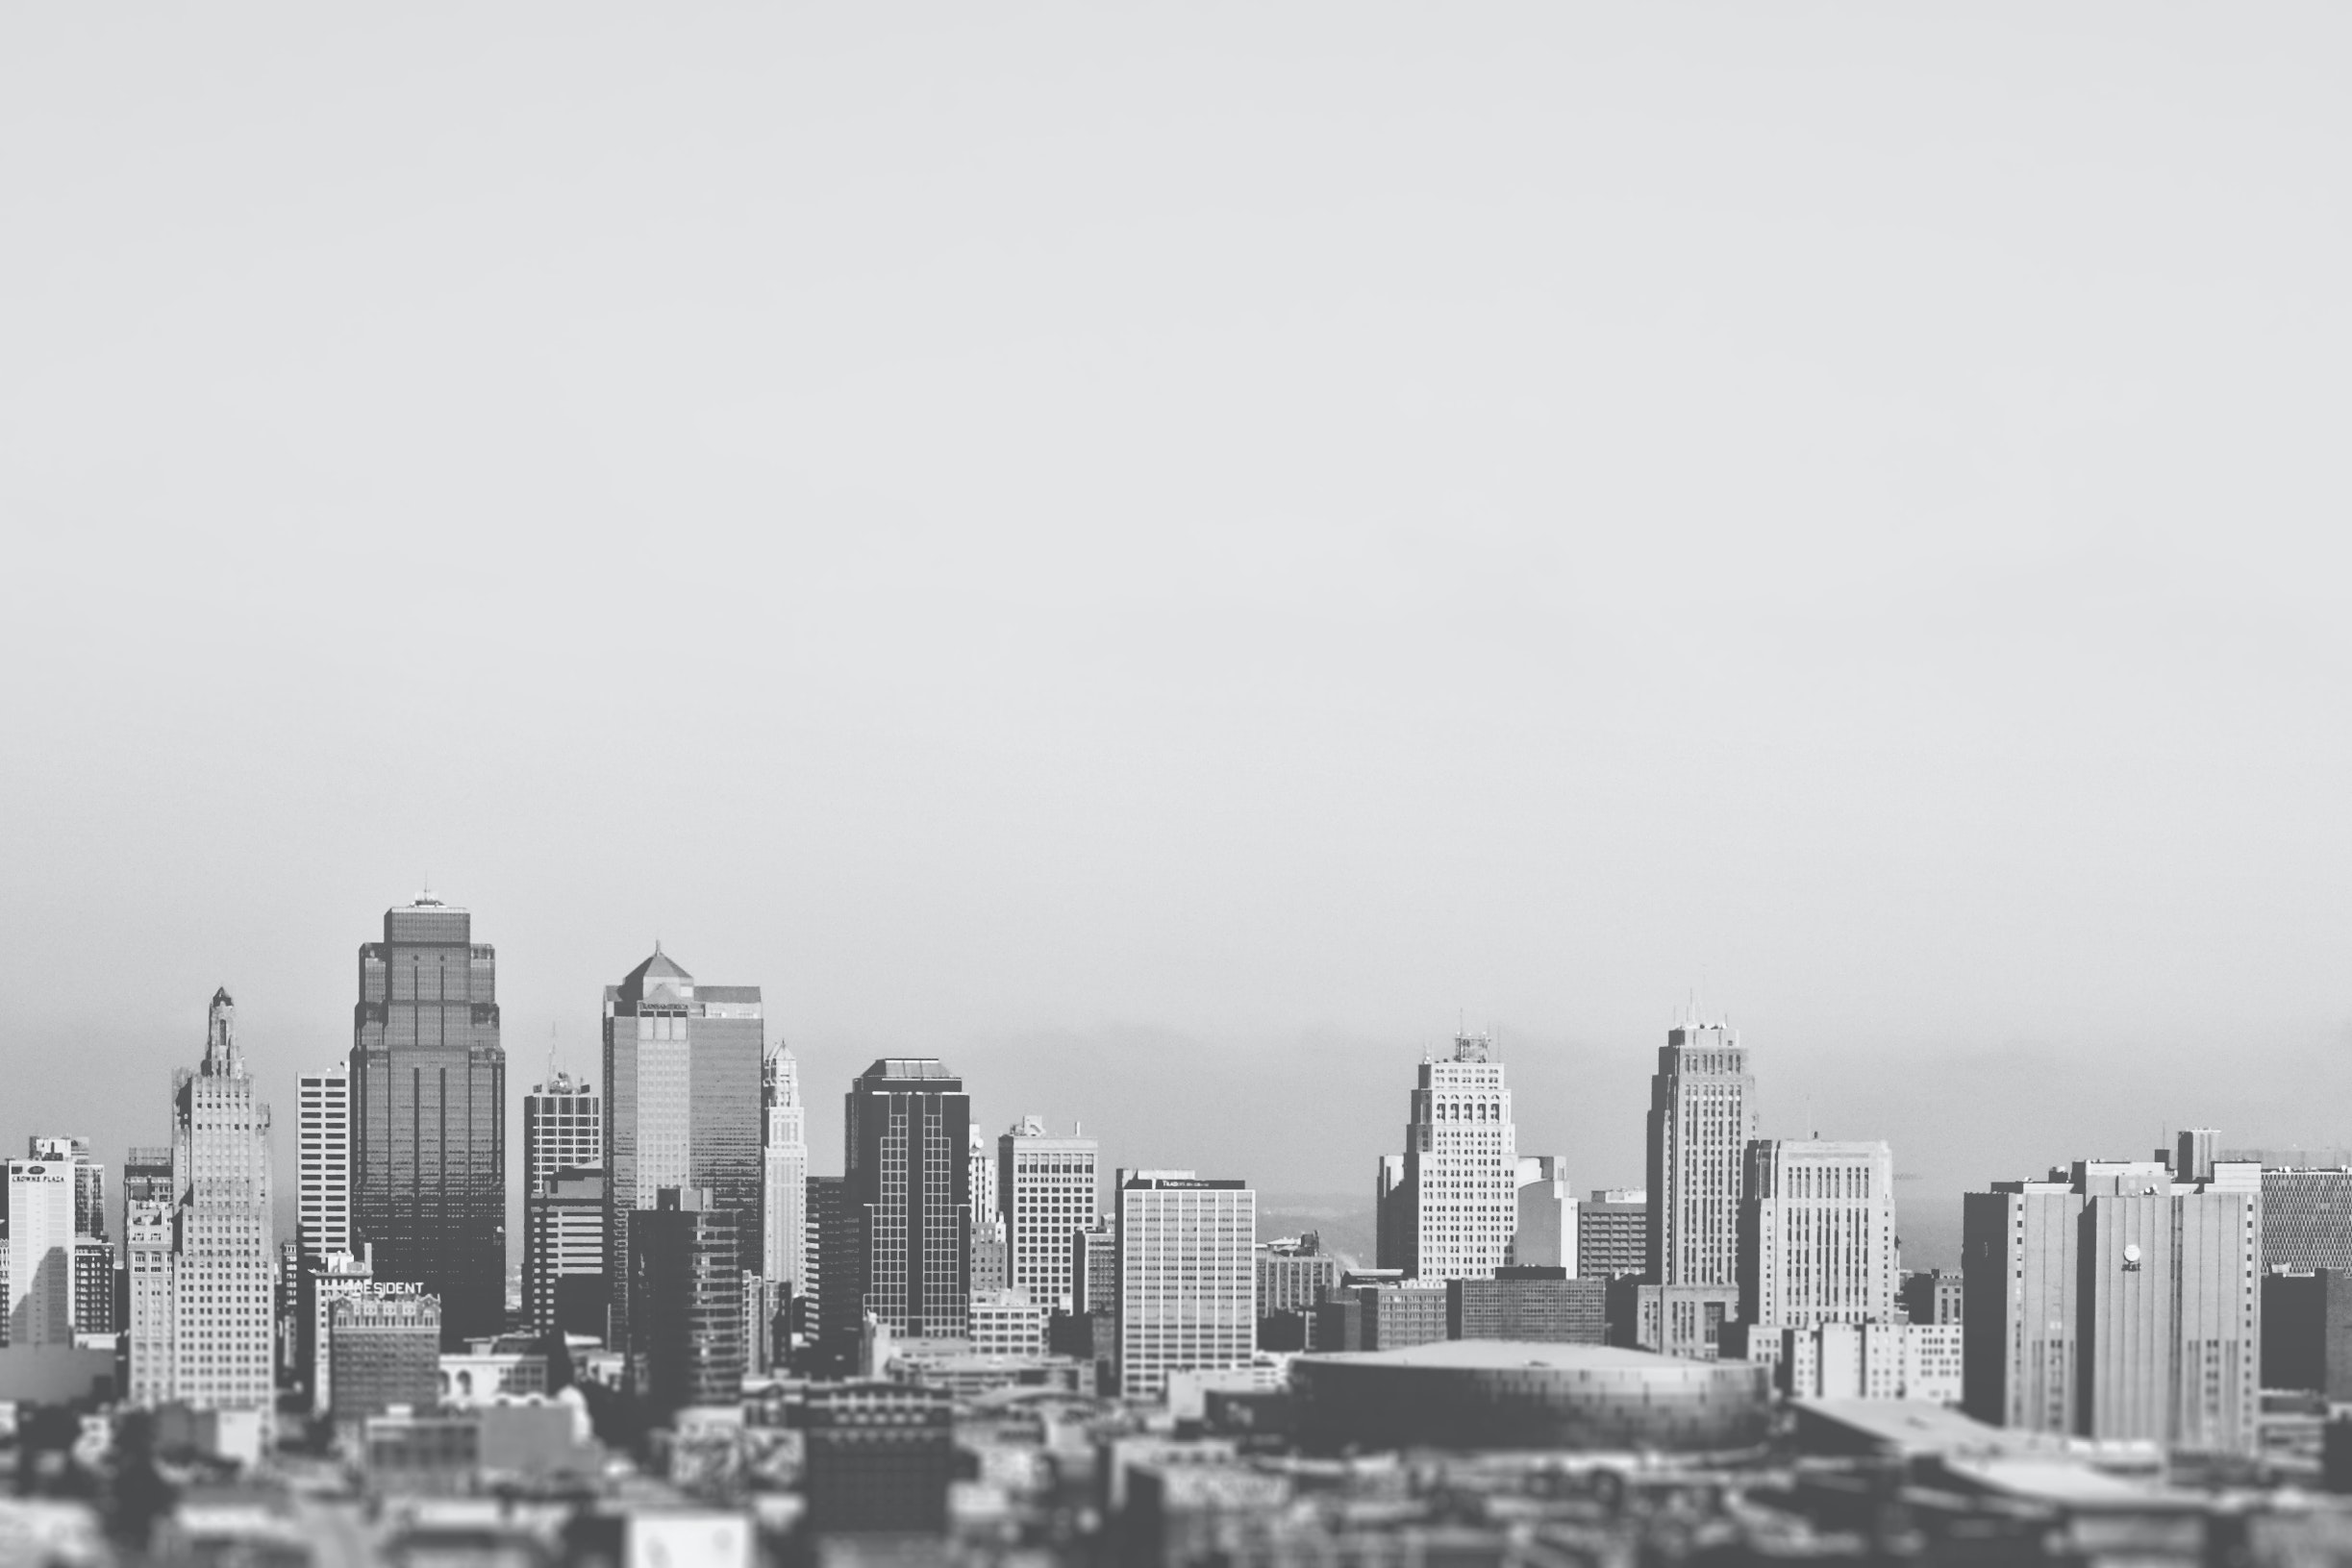 This black and white picture shows the downtown and business district of a typical american city gratisography